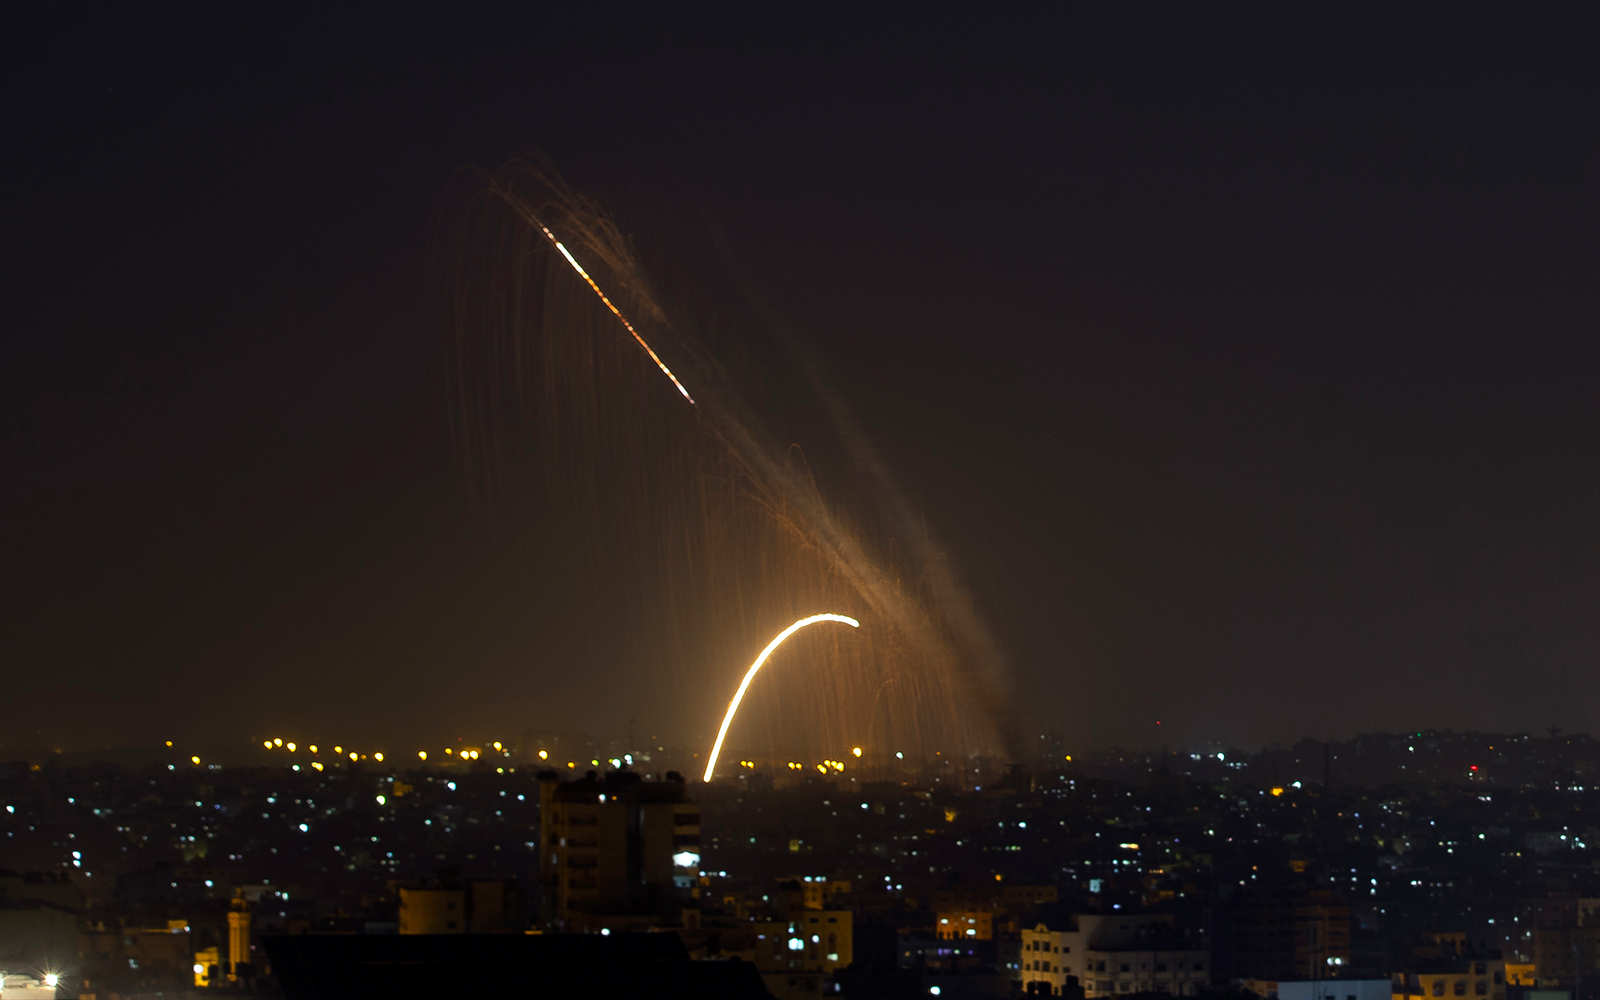 The ceasefire between Israel and Gaza continues to be maintained